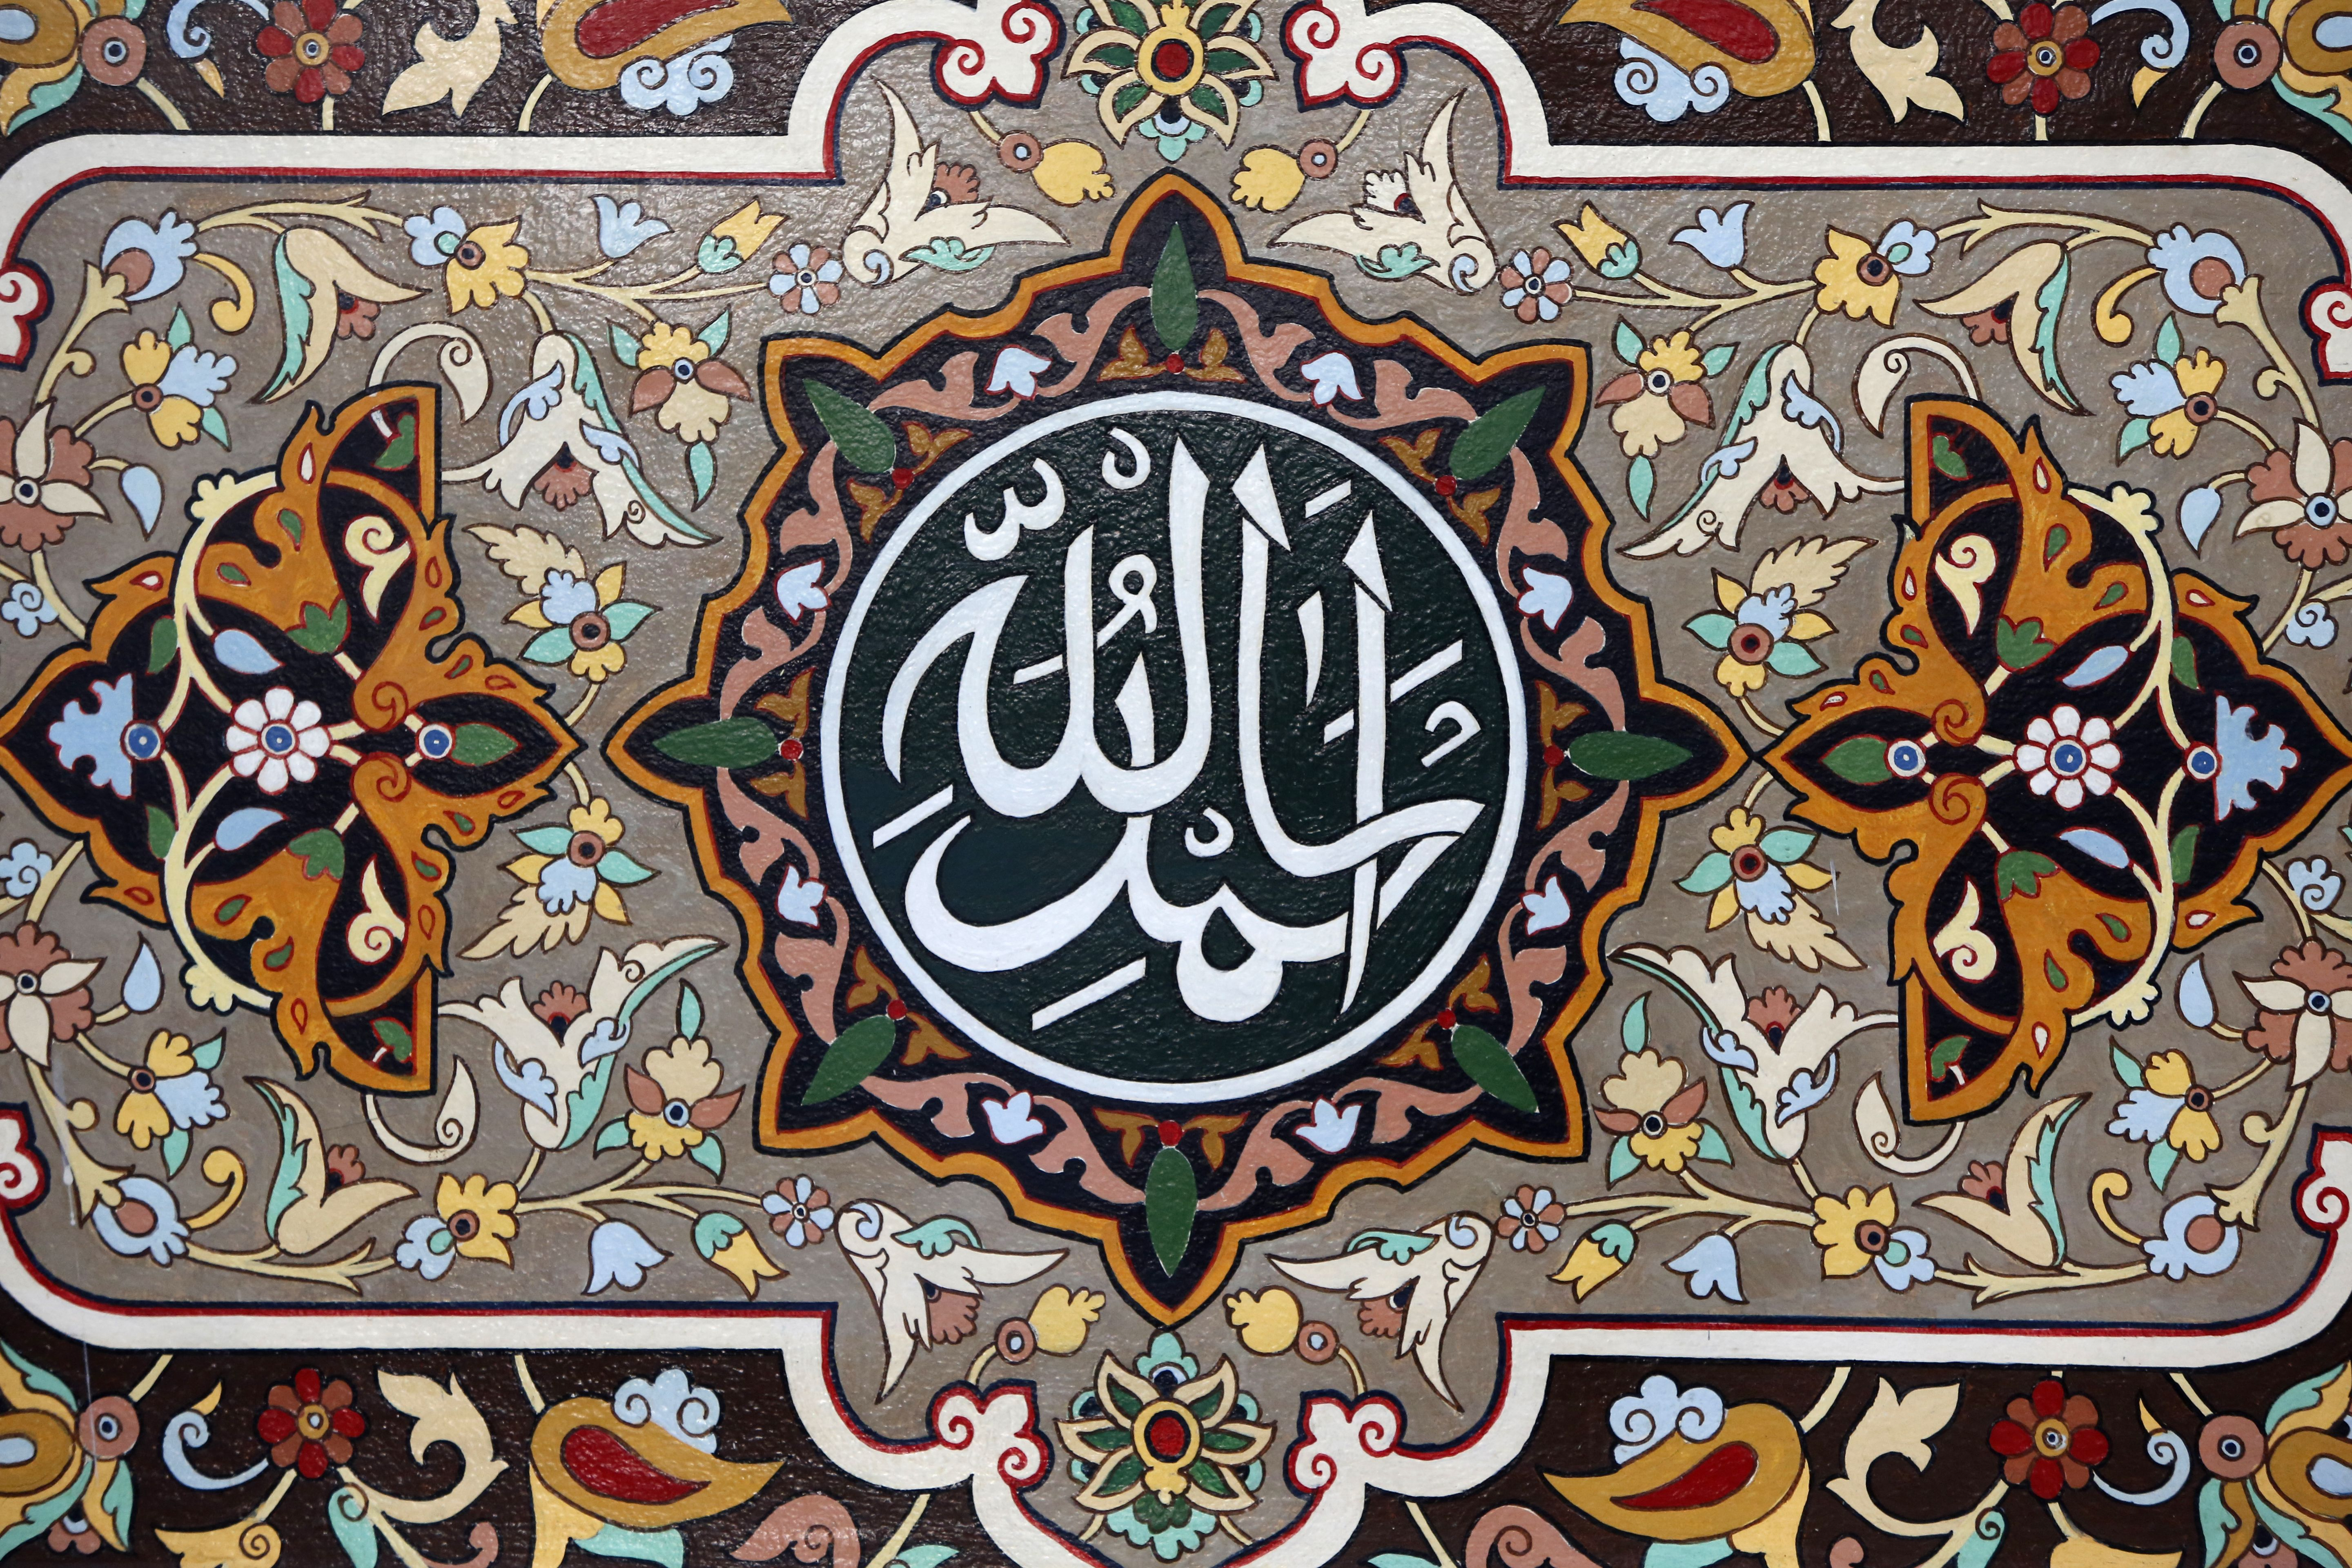 What Is the Meaning of the Islamic Phrase Alhamdulillah